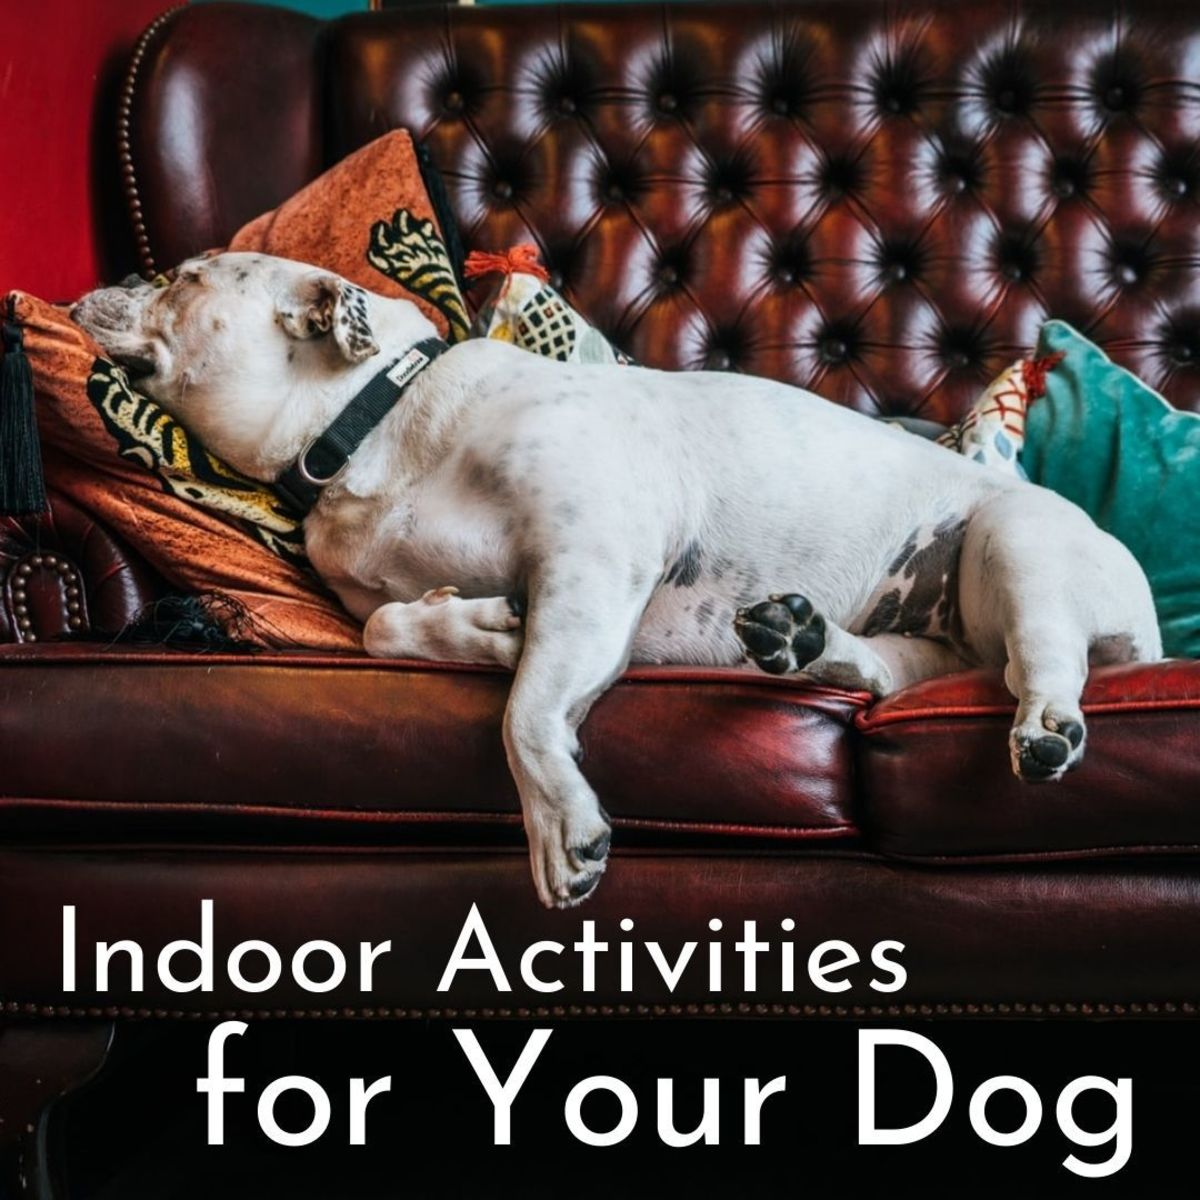 What do you do with your canine buddy if you're both stuck indoors for the day?